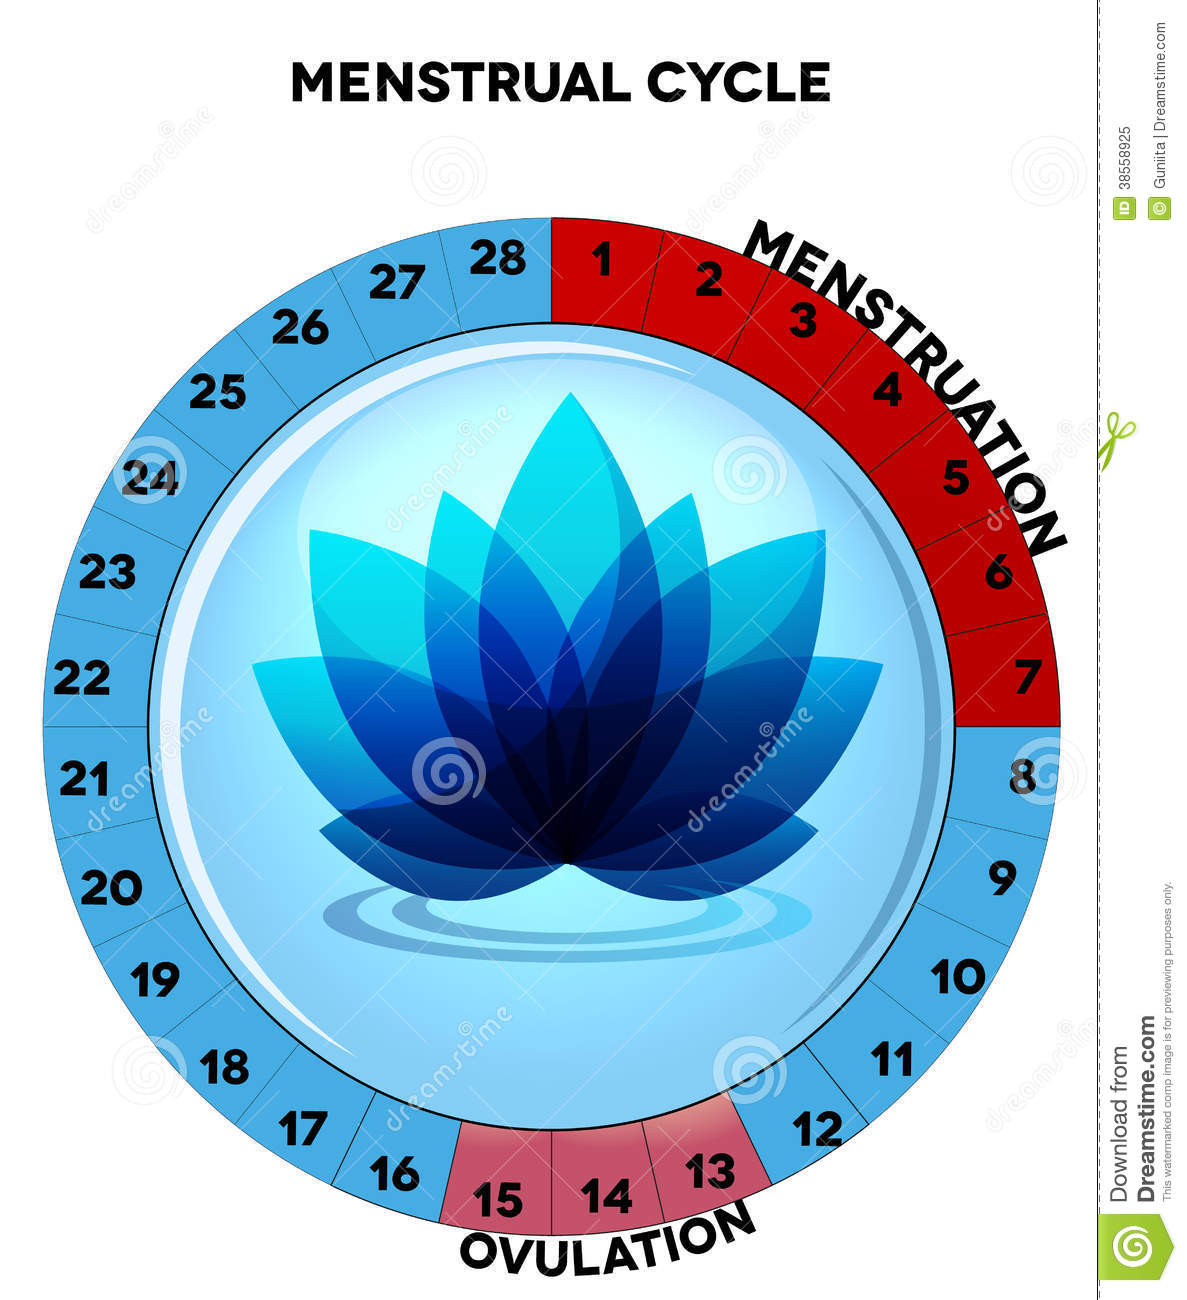 Menstruation Cycle Blue menstrual cycle chart